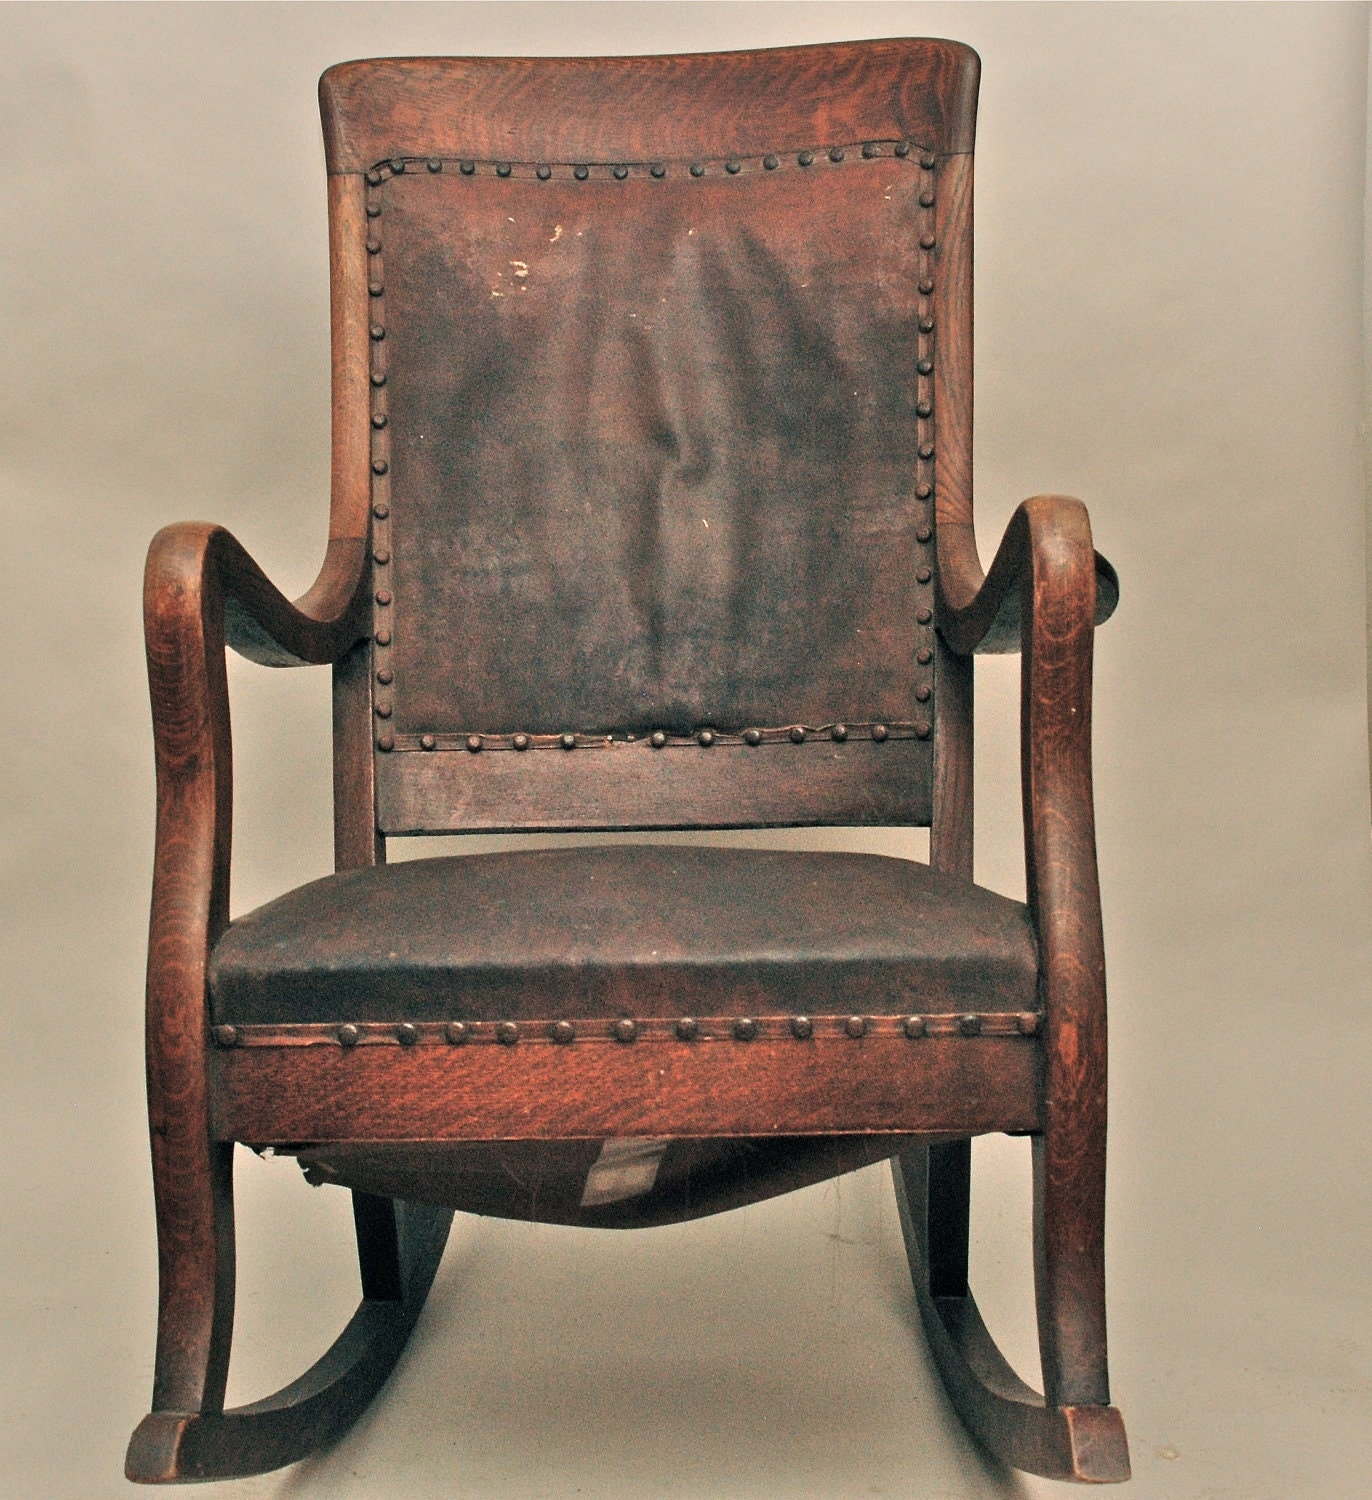 High back antique chairs -  Antique High Back Oak Rocking Chair With Leather Seat And Back Zoom